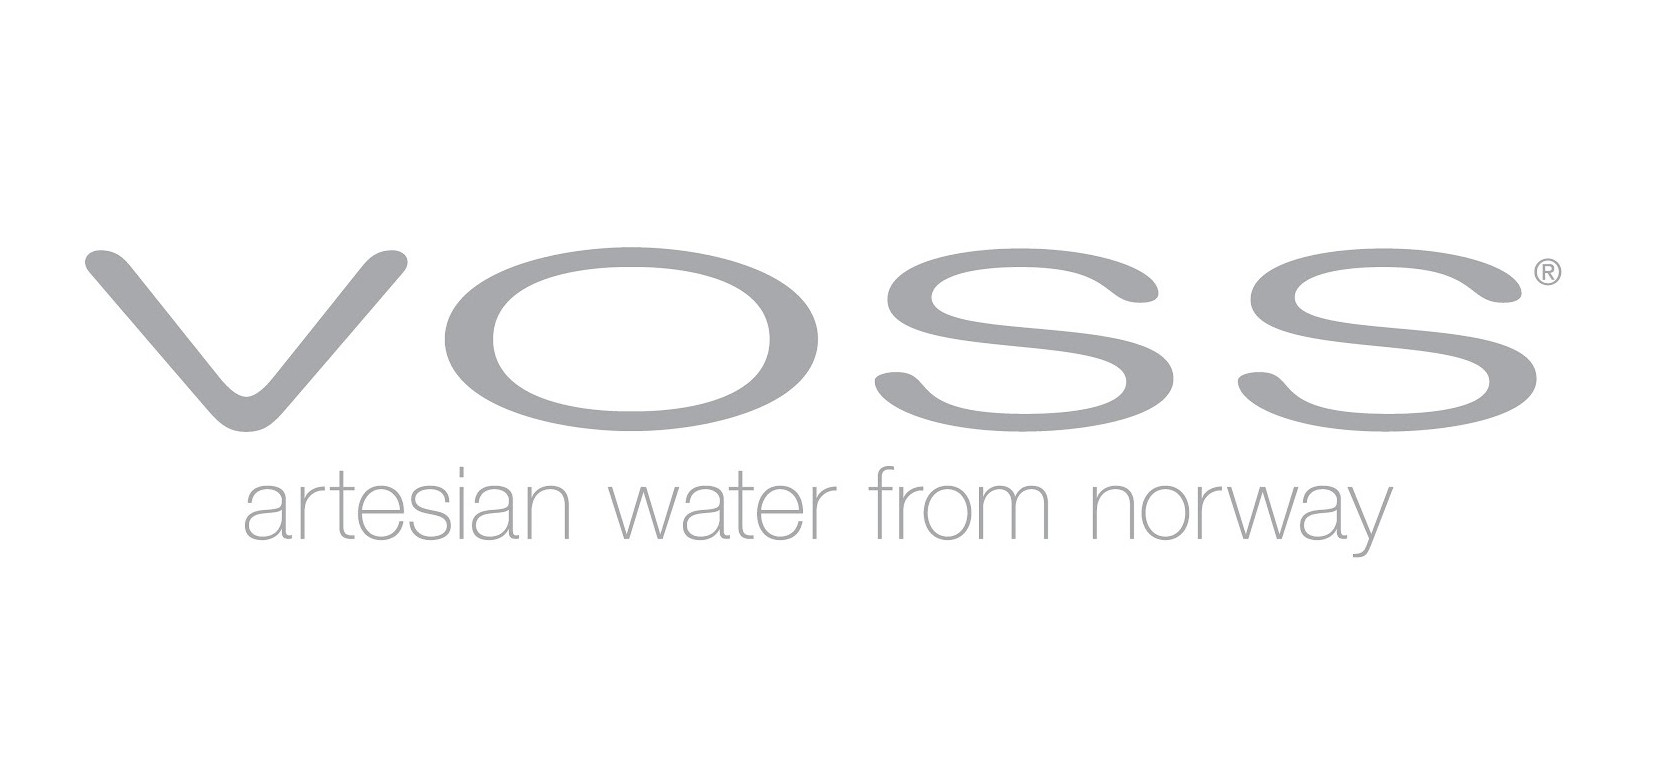 Voss Water surrounded by controversy